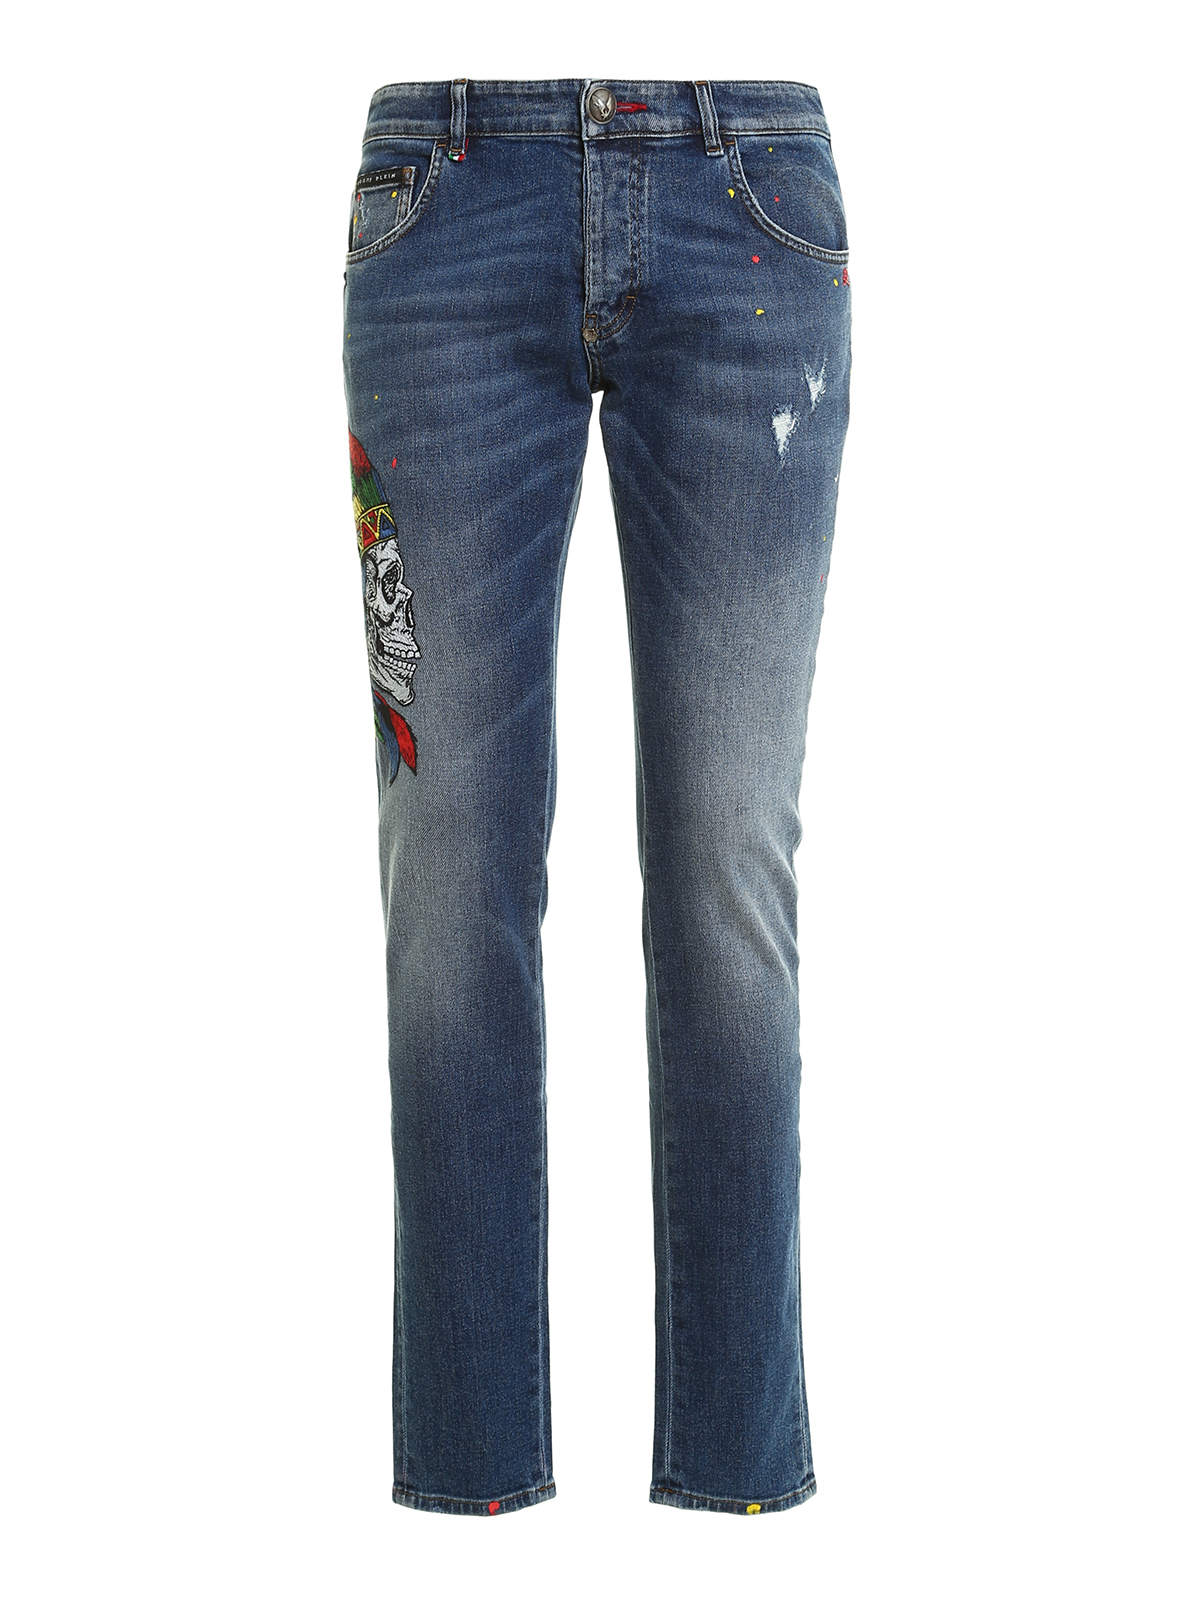 twisted embroidered jeans by philipp plein straight leg jeans ikrix. Black Bedroom Furniture Sets. Home Design Ideas